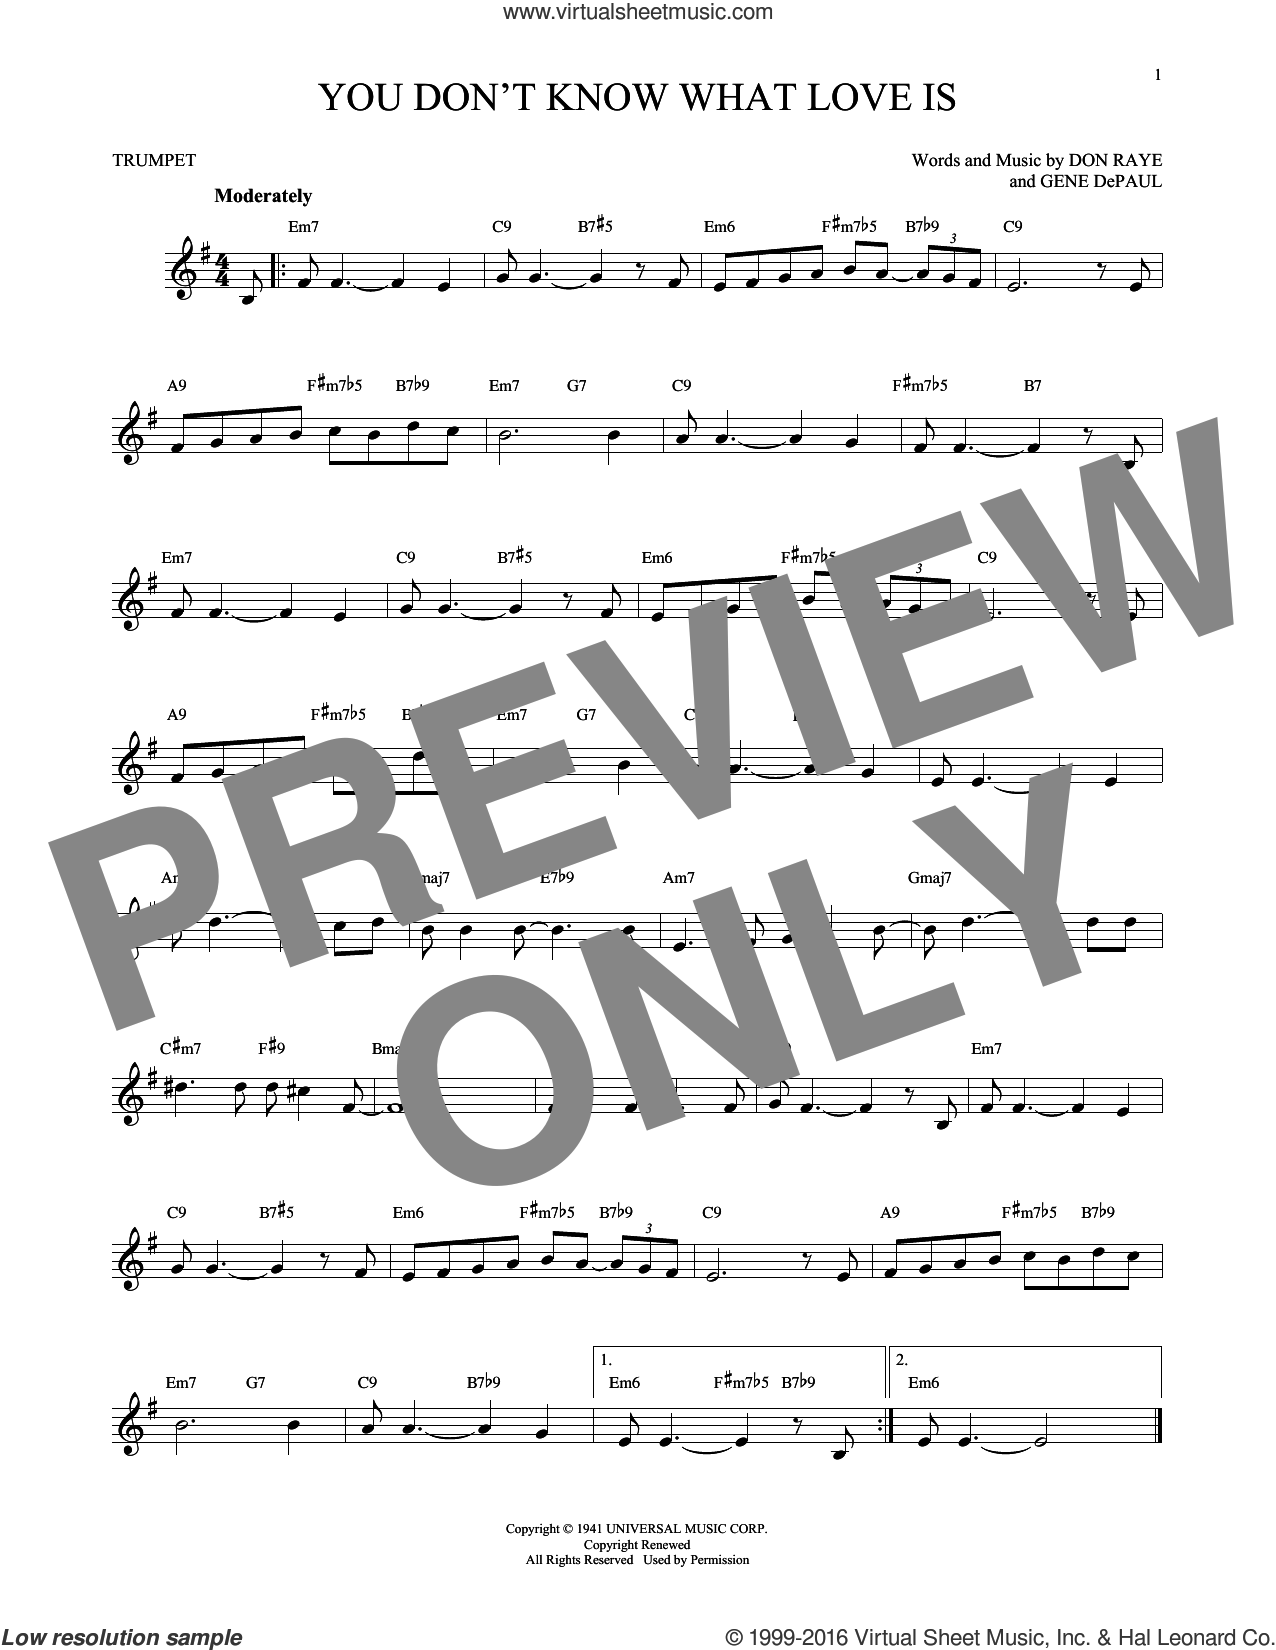 You Don't Know What Love Is sheet music for trumpet solo by Gene DePaul and Don Raye. Score Image Preview.